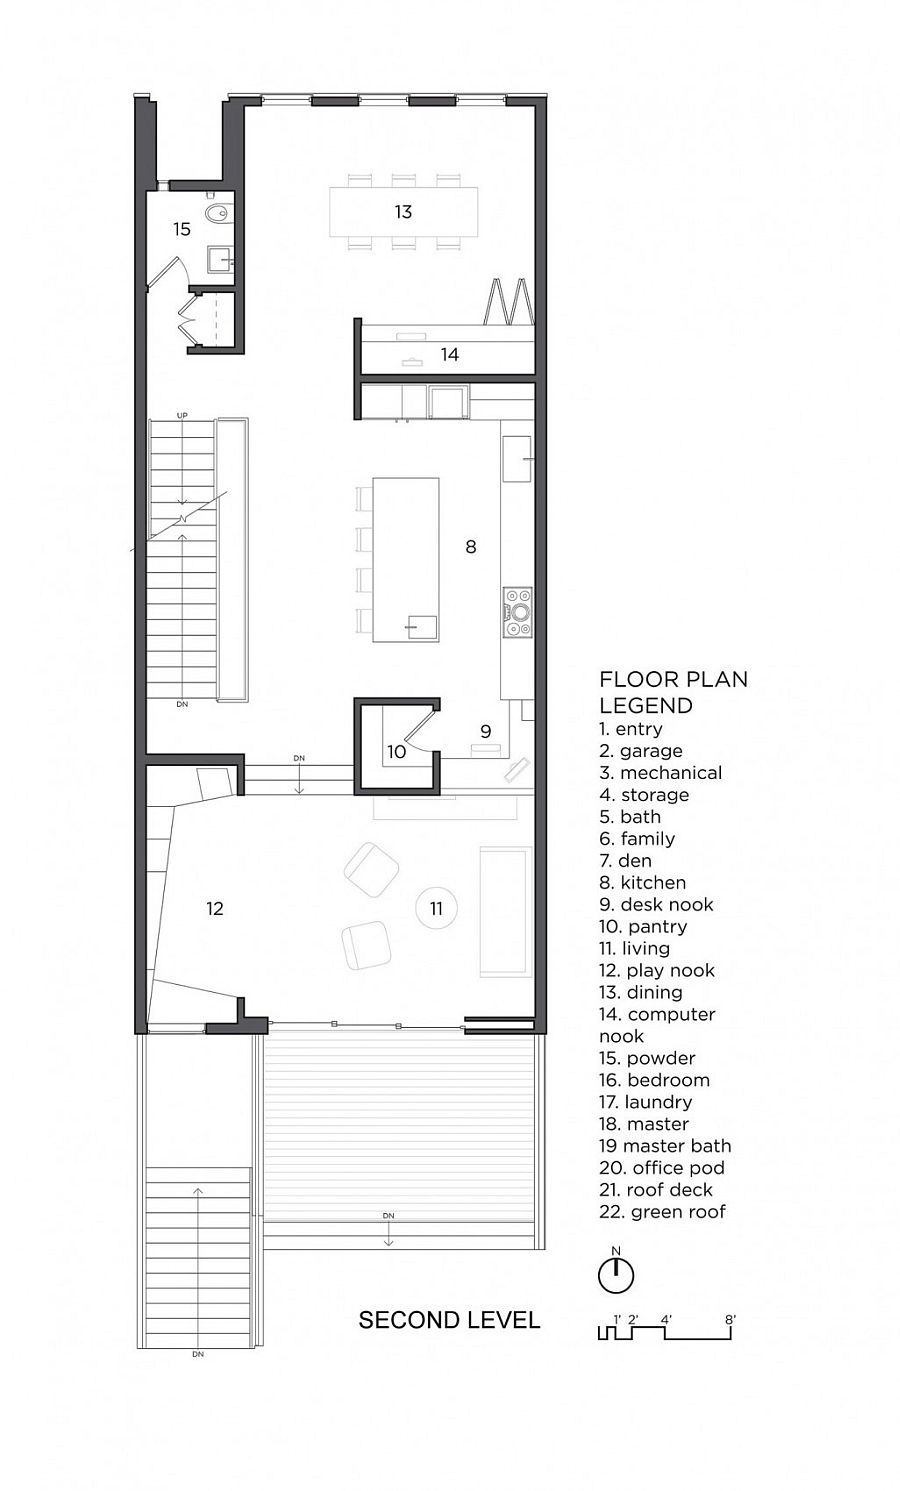 Second level floor plan of the house